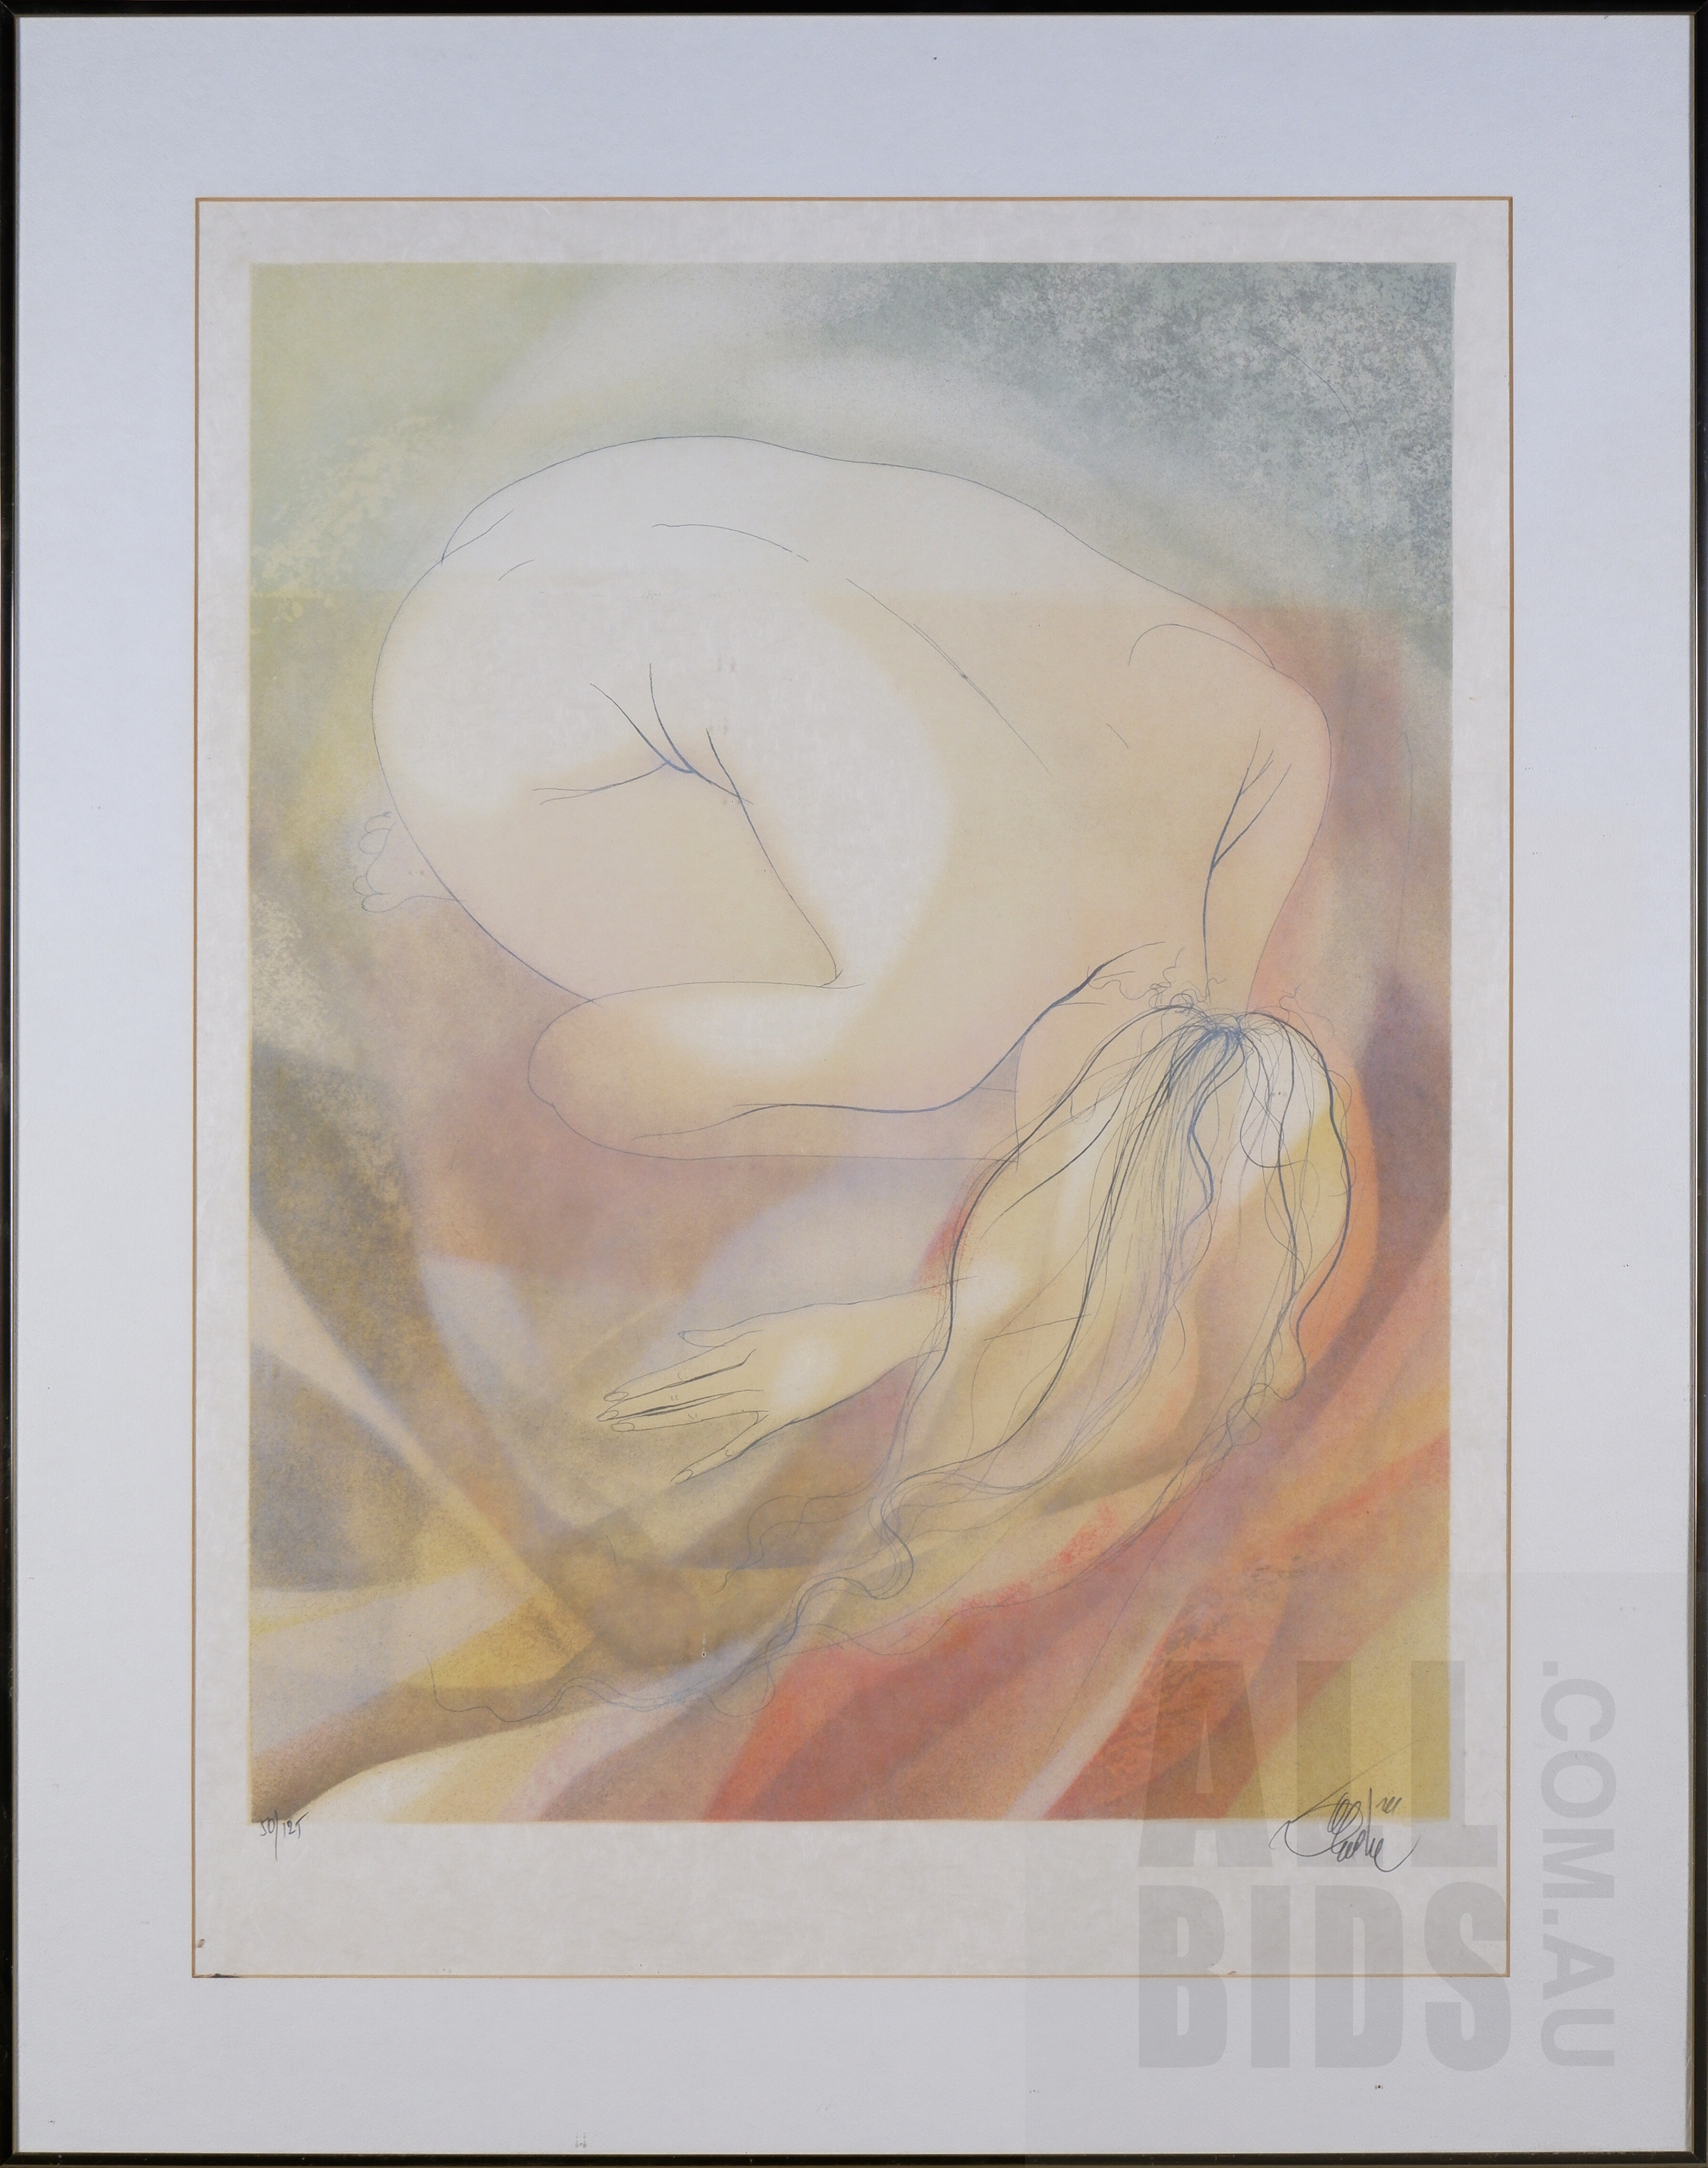 'Jean Baptiste Valadie (born 1933, French), Spirale, Lithograph, 65 x 50 cm (image size)'